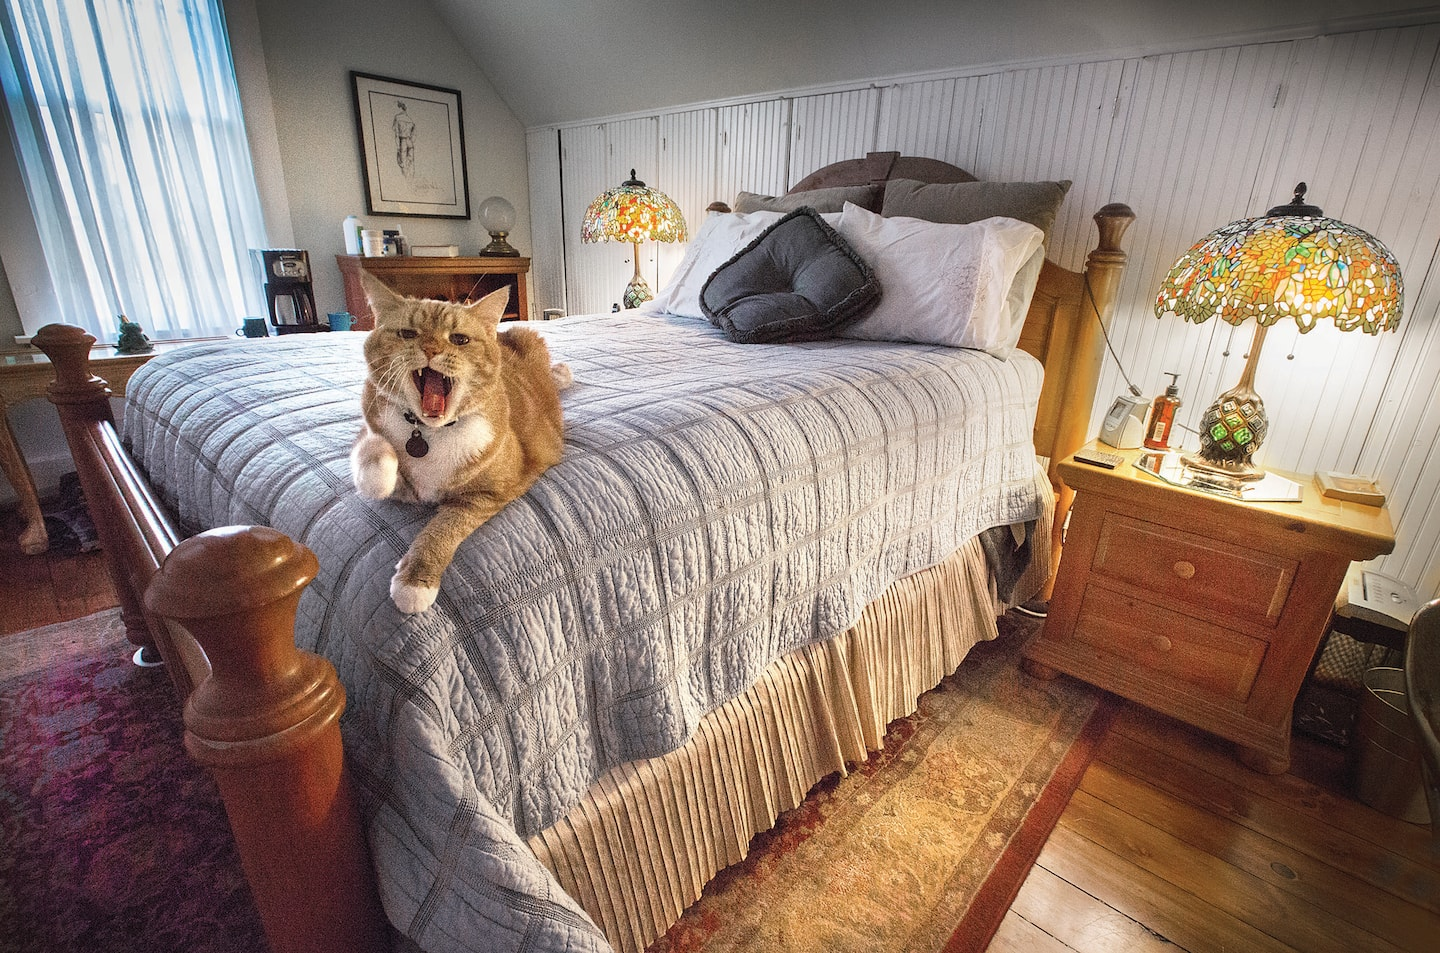 Cats Amore Felines Photobomb Nice Rooms Angie S List